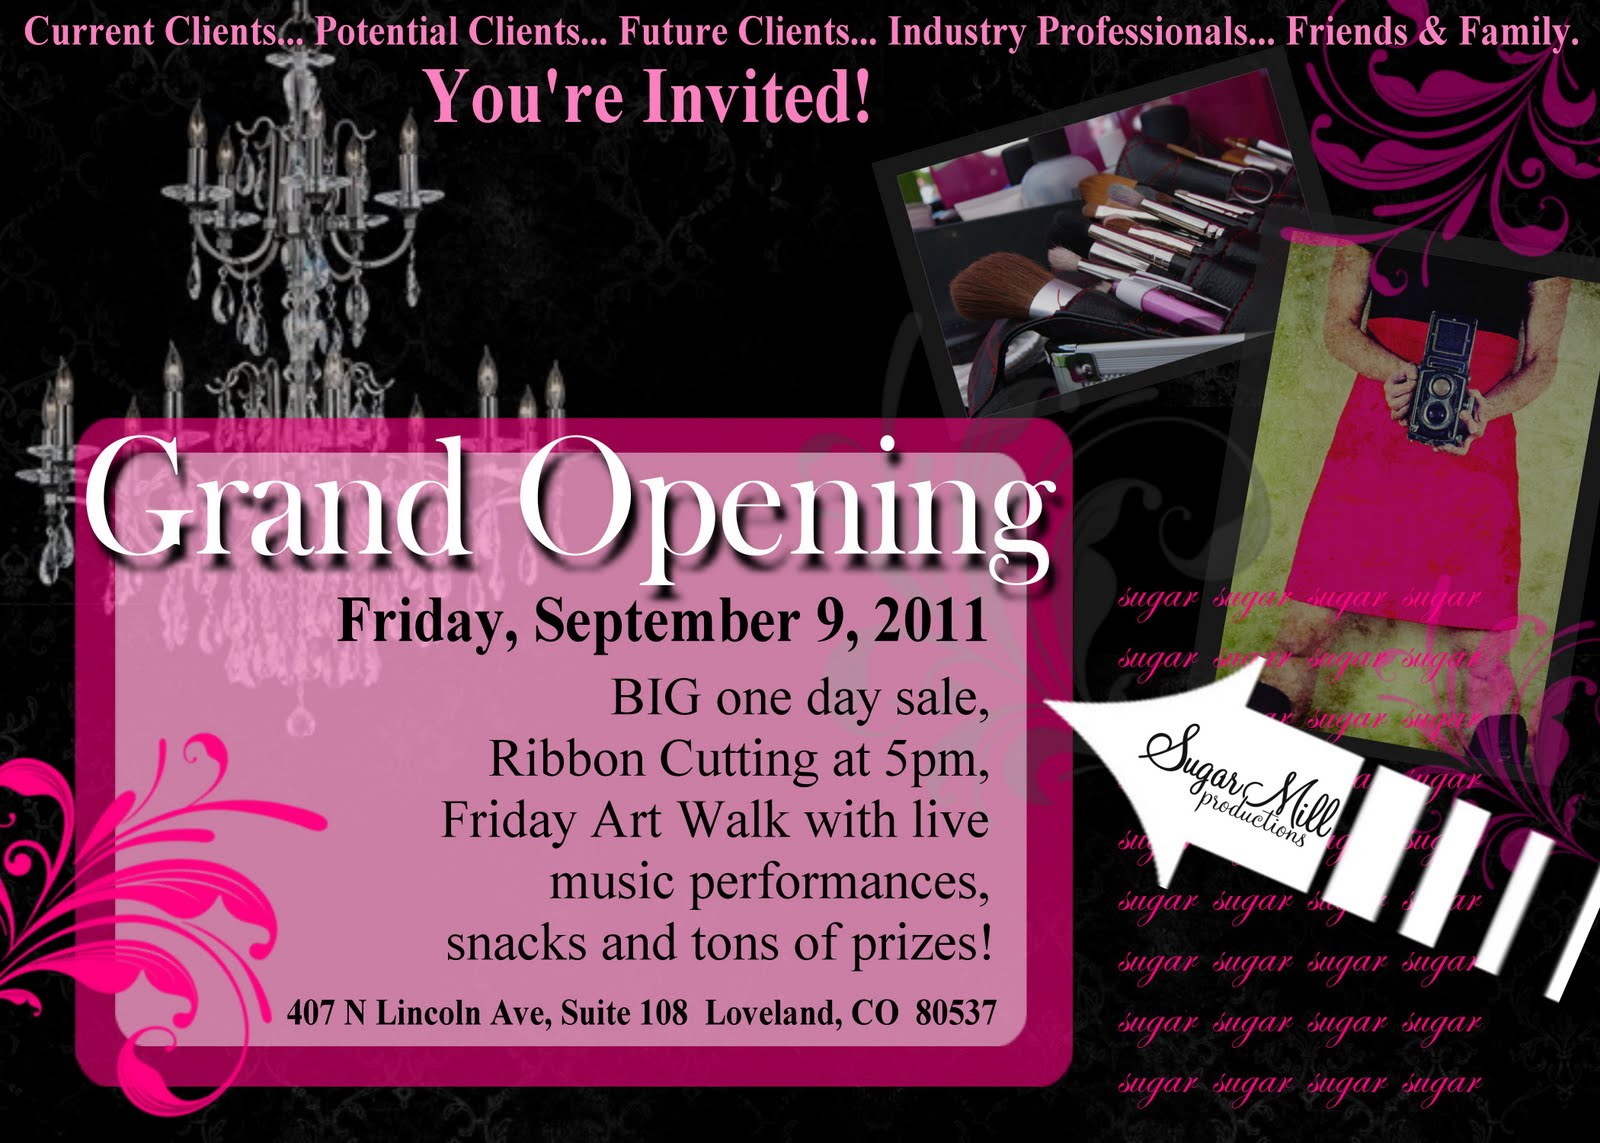 Hair Salon Grand Opening Flyer http://sugarmillproductionsco.blogspot.com/